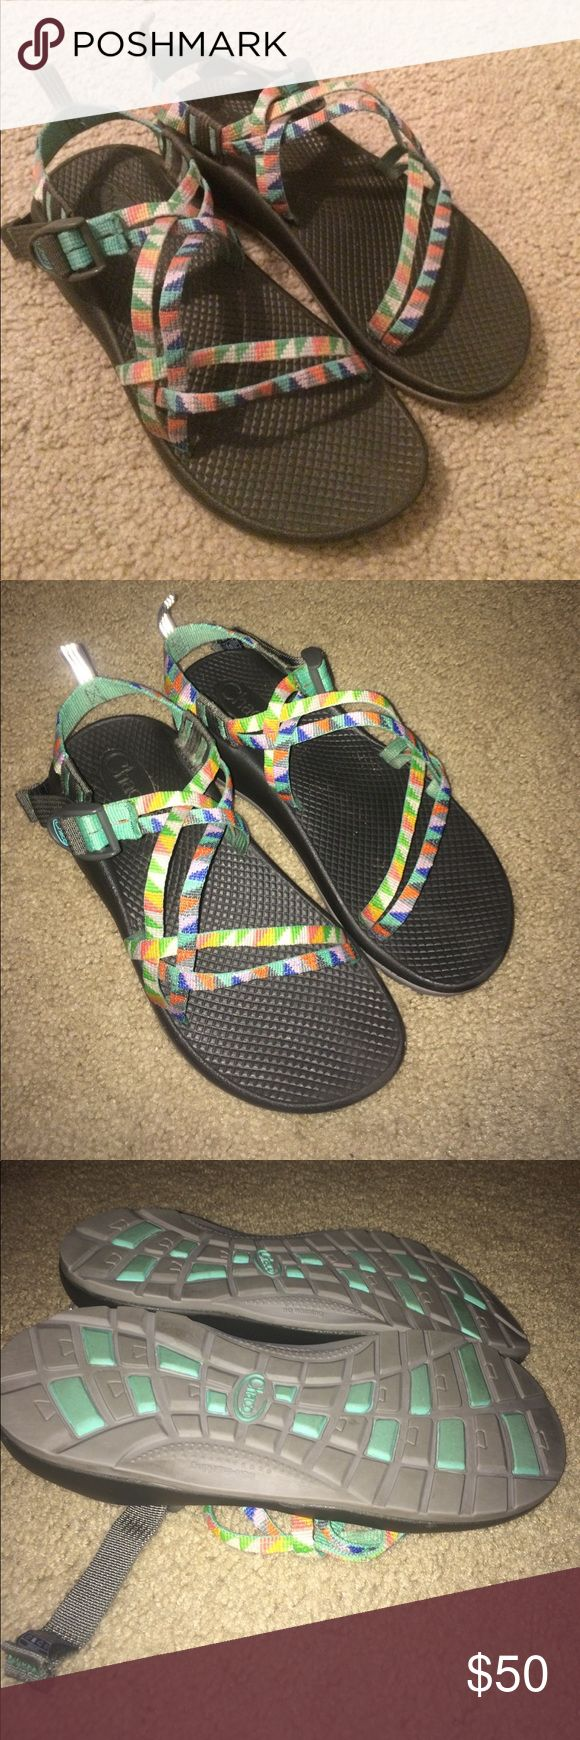 Chacos Rainbow patterned KIDS SIZE 6 Chacos! I also wear a W8 Chacos and these were the equivalent kids size the sales lady recommended and they fit me perfectly to my own amazement haha! I just couldn't pass up these rainbow triangles! Worn only a few times and such a great pattern for Summer! Get these now because this pattern sells out! Chaco Shoes Sandals & Flip Flops